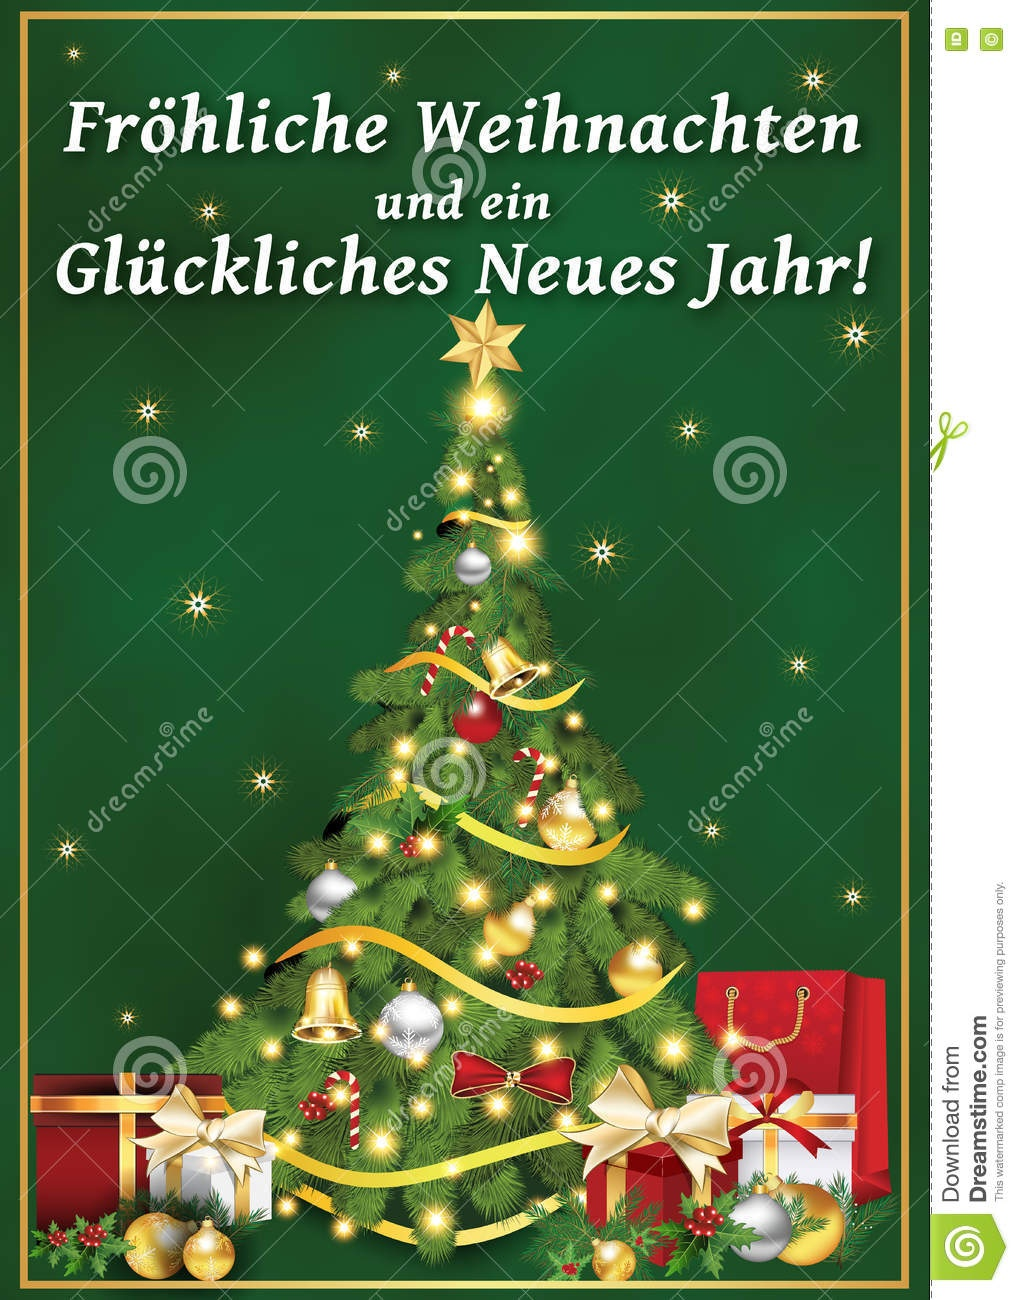 German Corporate Greeting Card For Winter Holiday. Stock - Free Printable German Christmas Cards